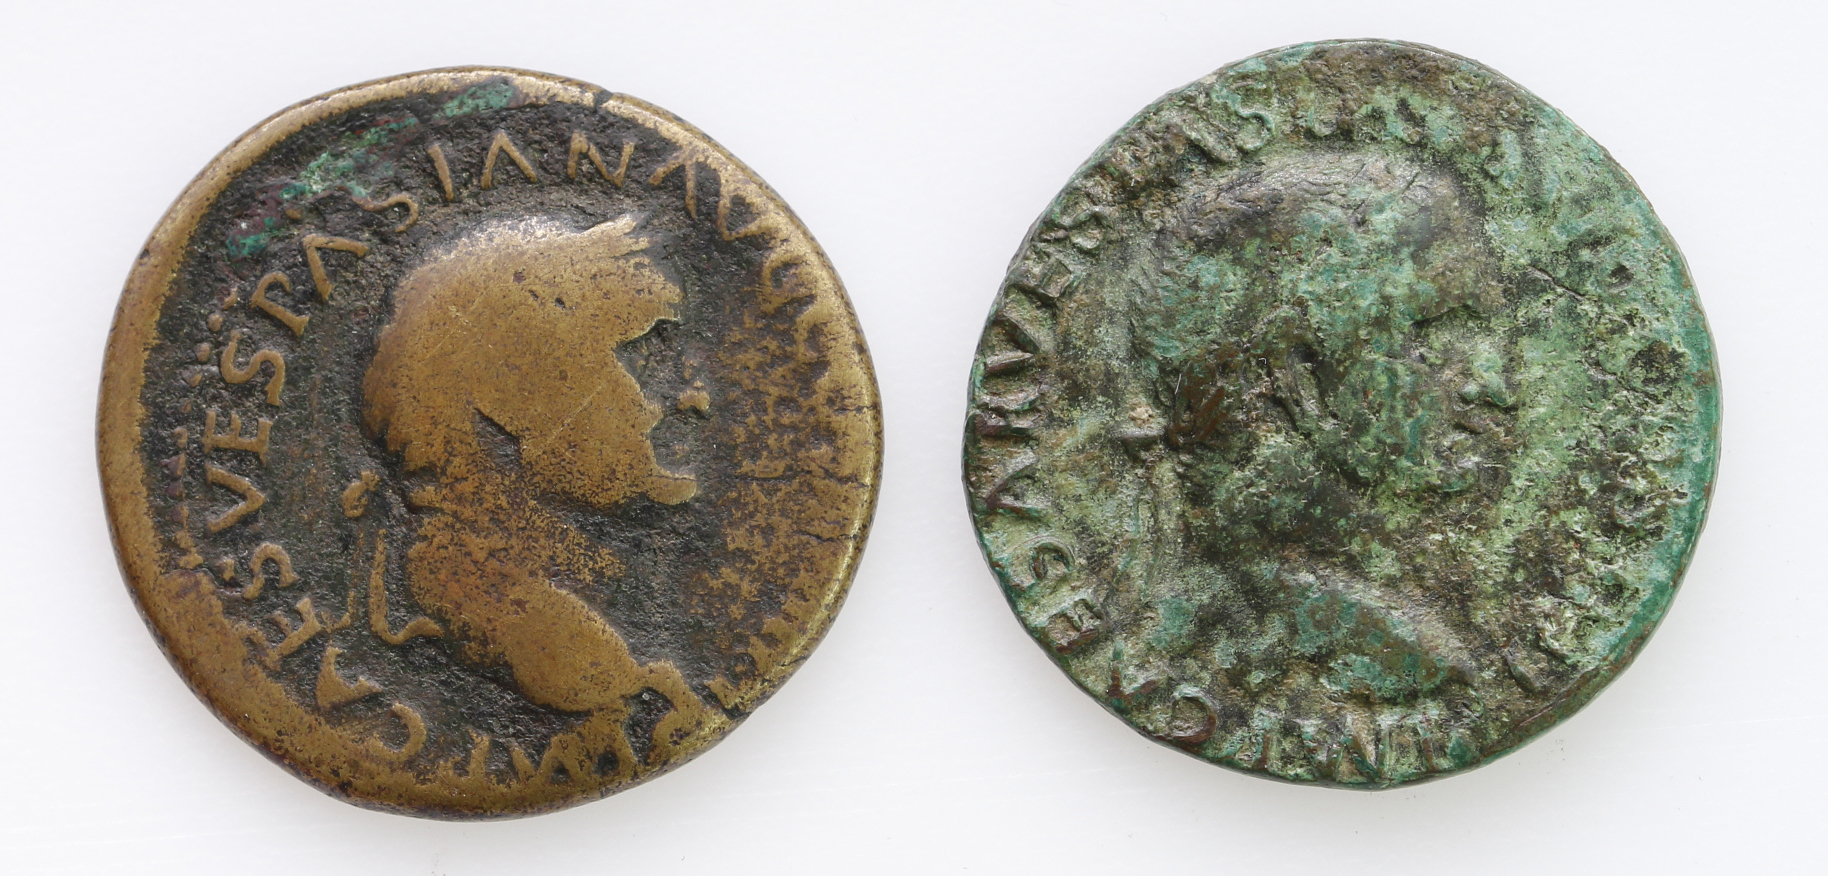 Roman Imperial: Vespasian (2): AE As, eagle on globe,11.03g, VF, green patina, along with brass